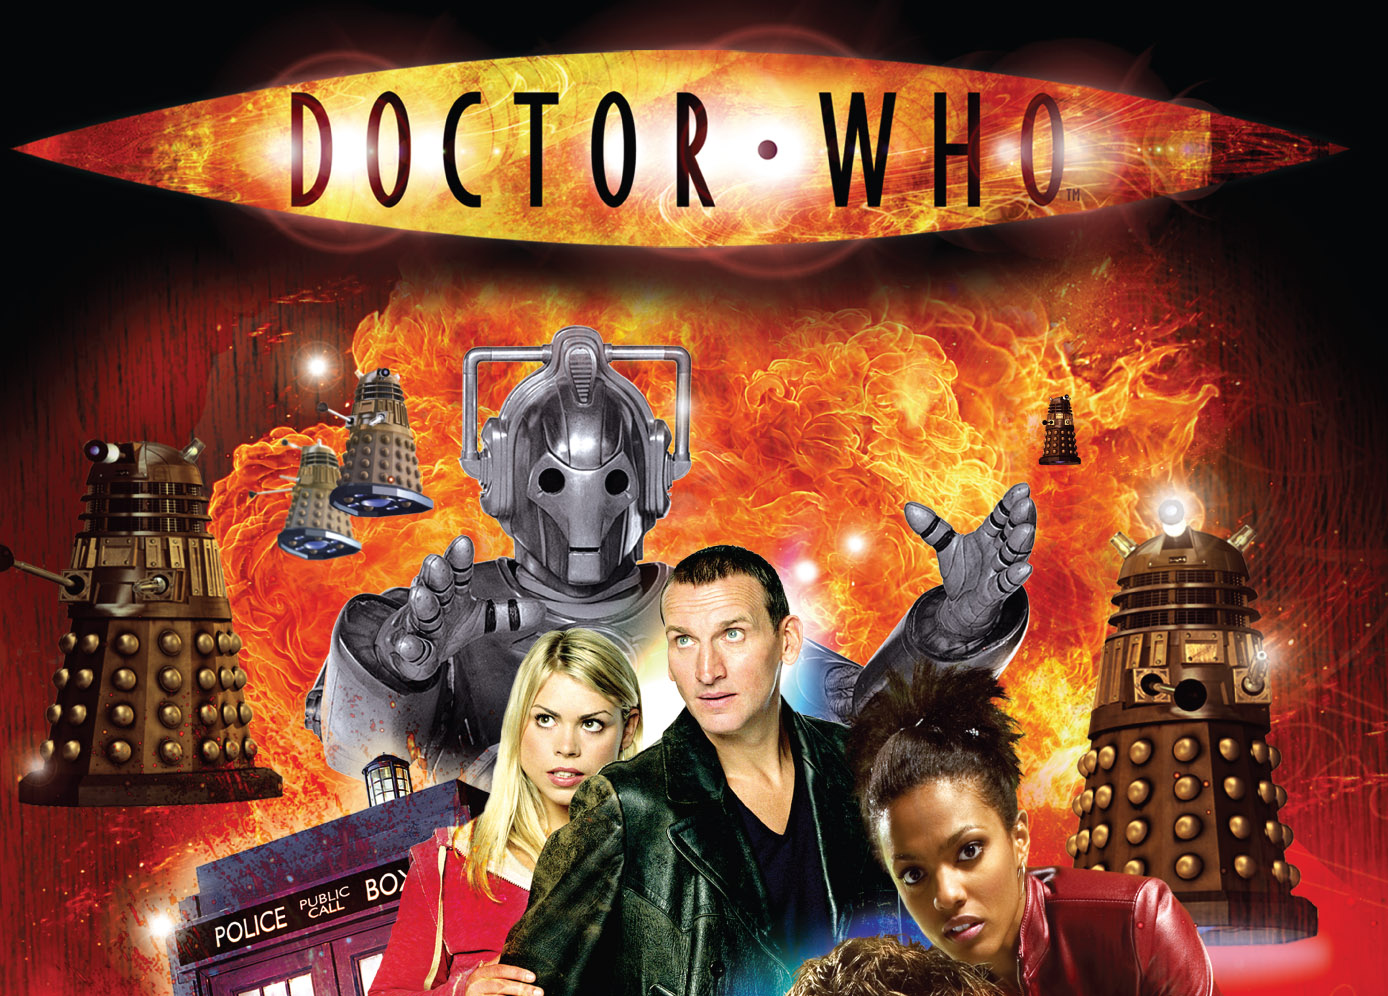 Doctor Who DVD ad